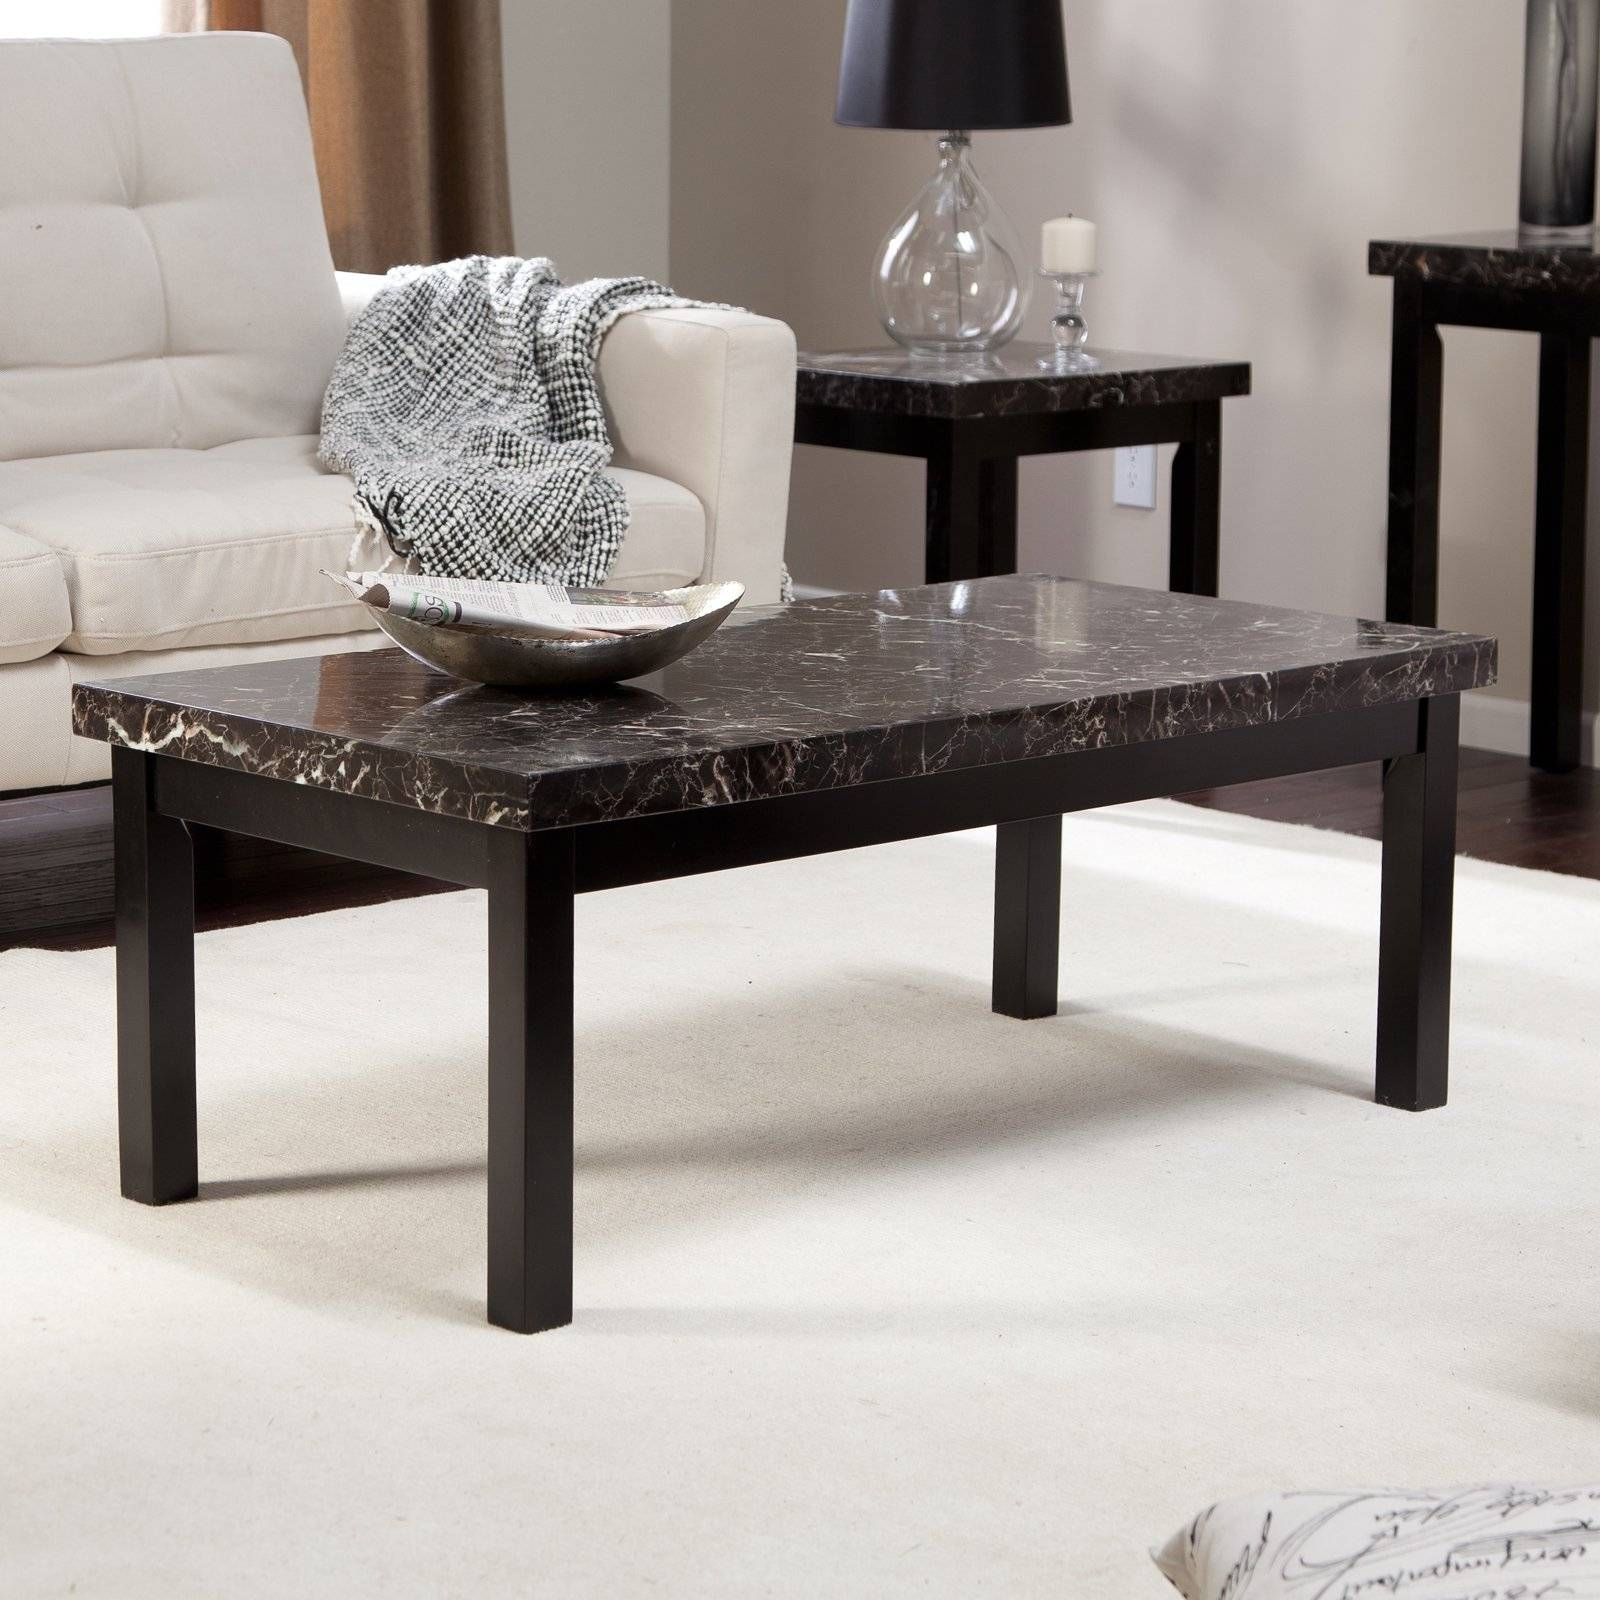 Galassia Faux Marble Coffee Table | Hayneedle for Marble Coffee Tables (Image 14 of 30)